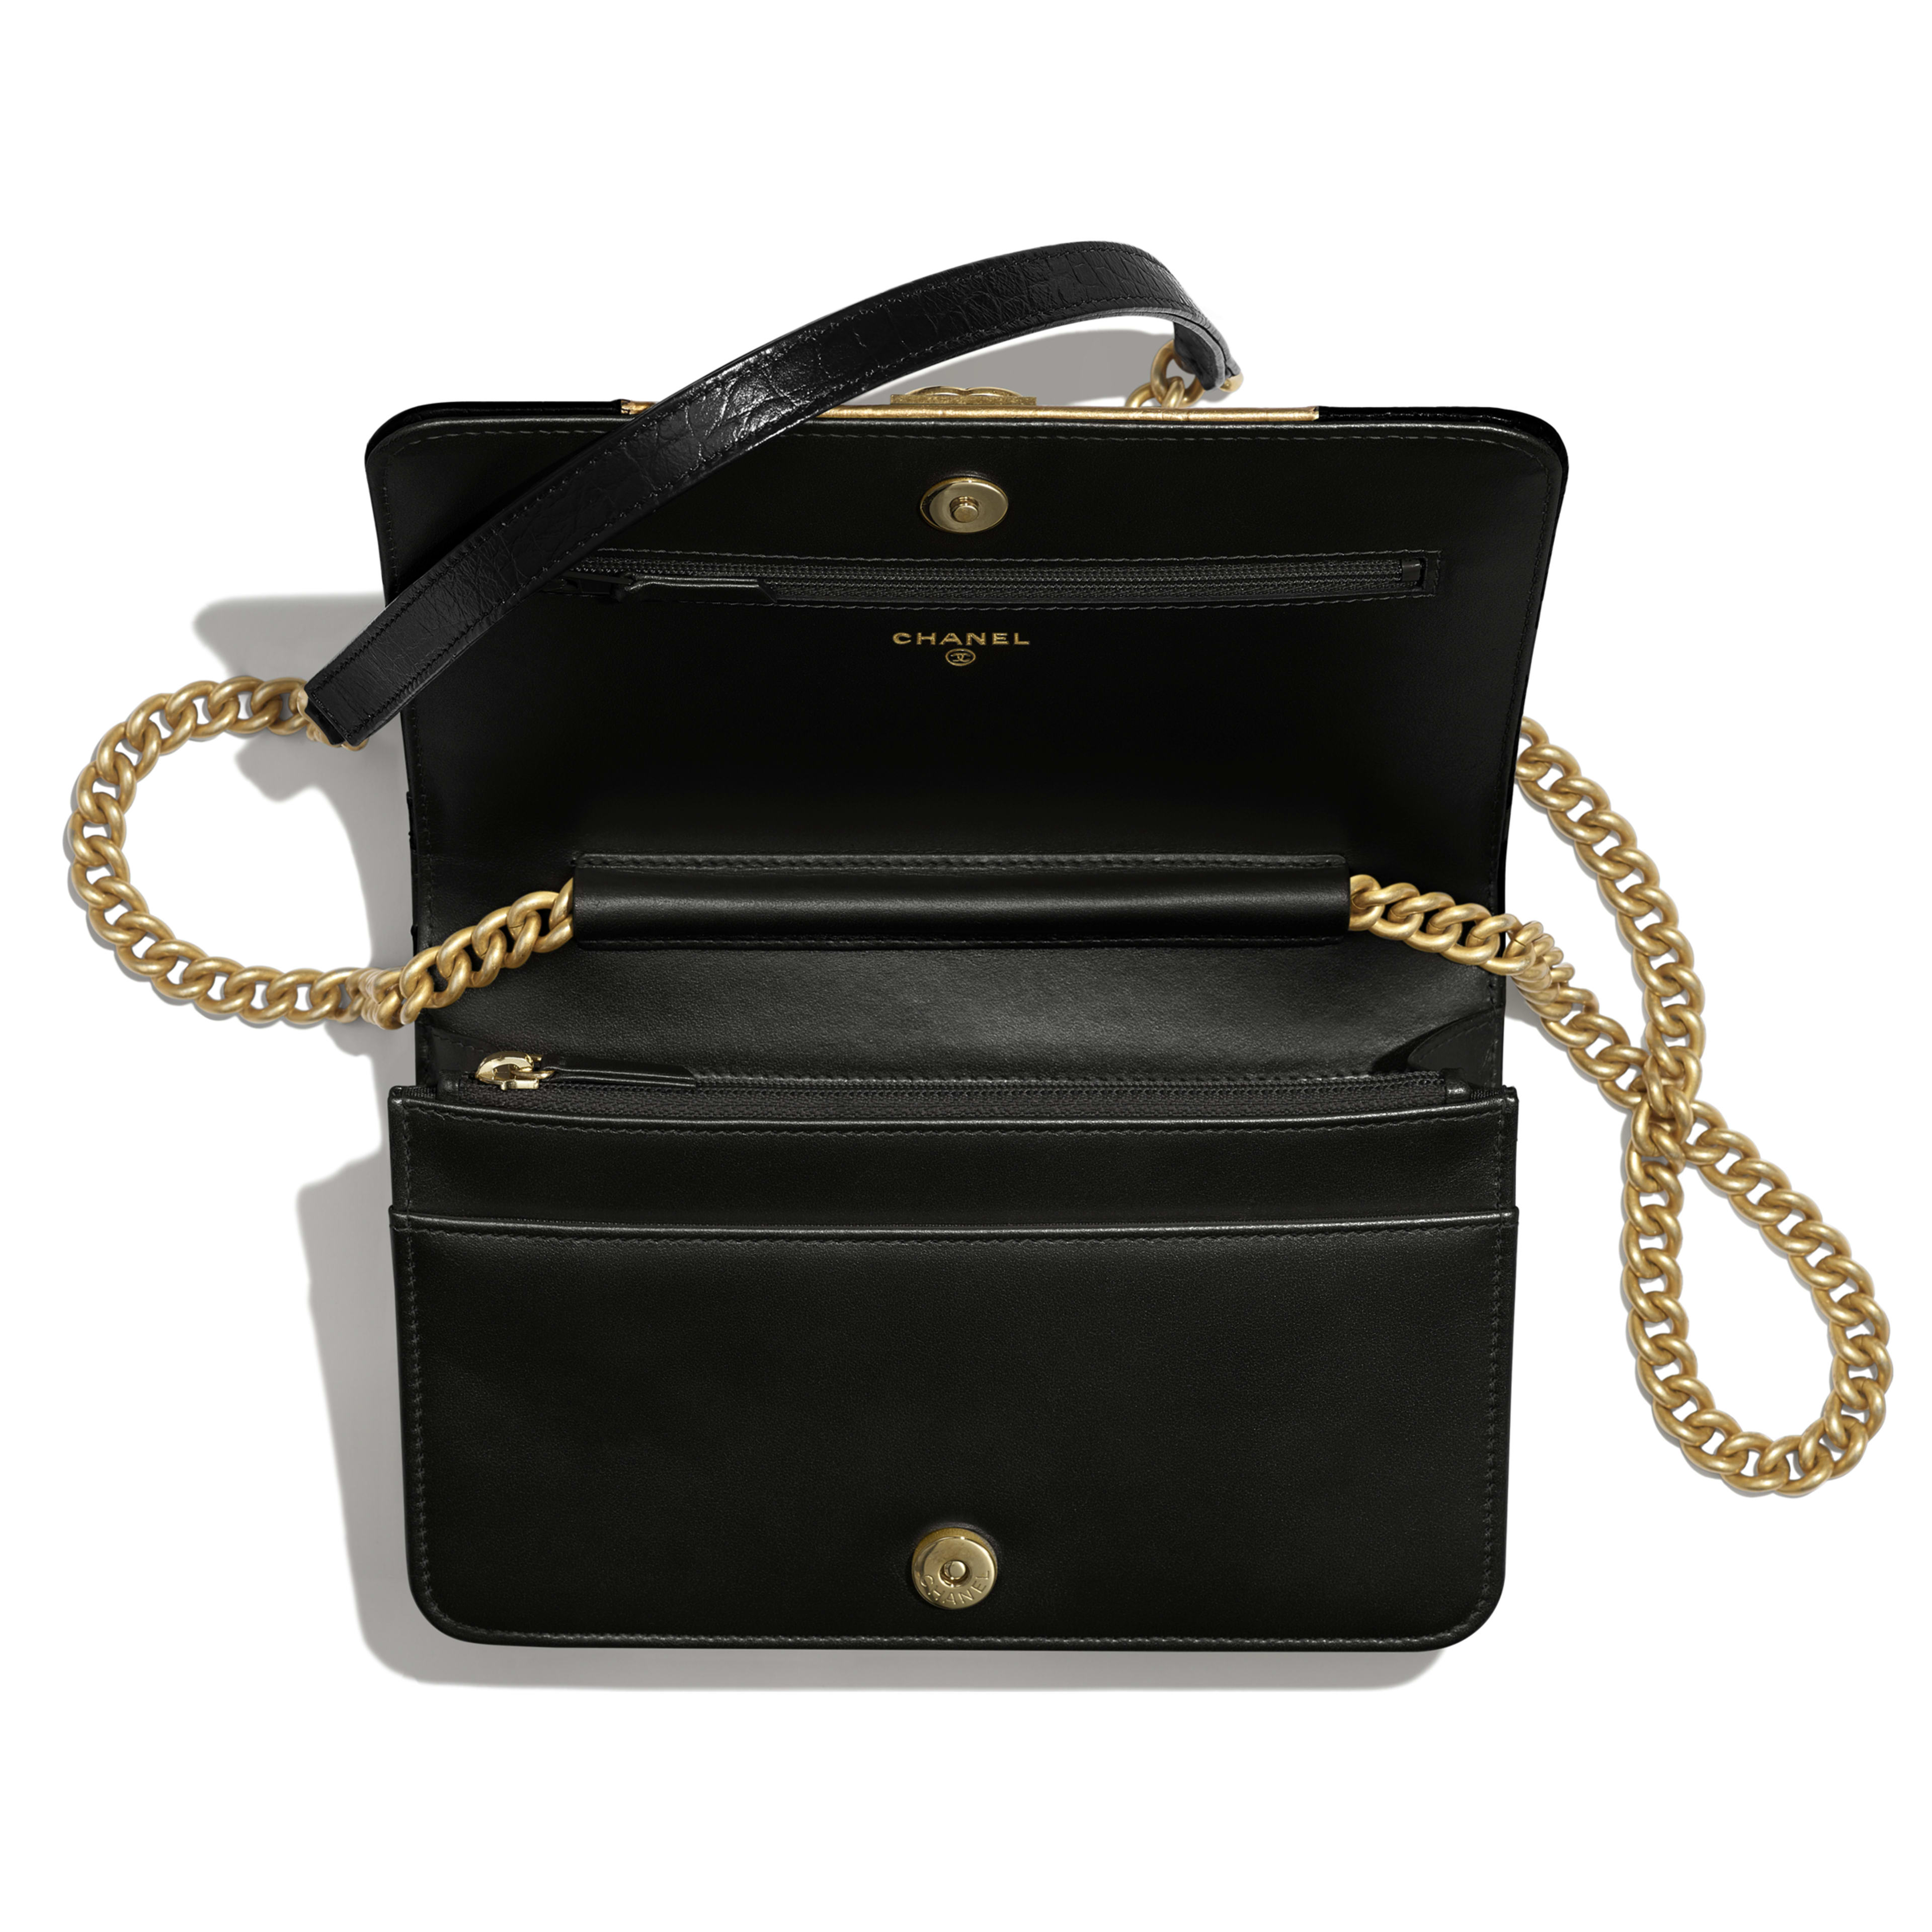 BOY CHANEL Wallet on Chain - Black & Gold - Crocodile Embossed Calfskin, Python Embossed Calfskin & Gold-Tone Metal - Other view - see full sized version